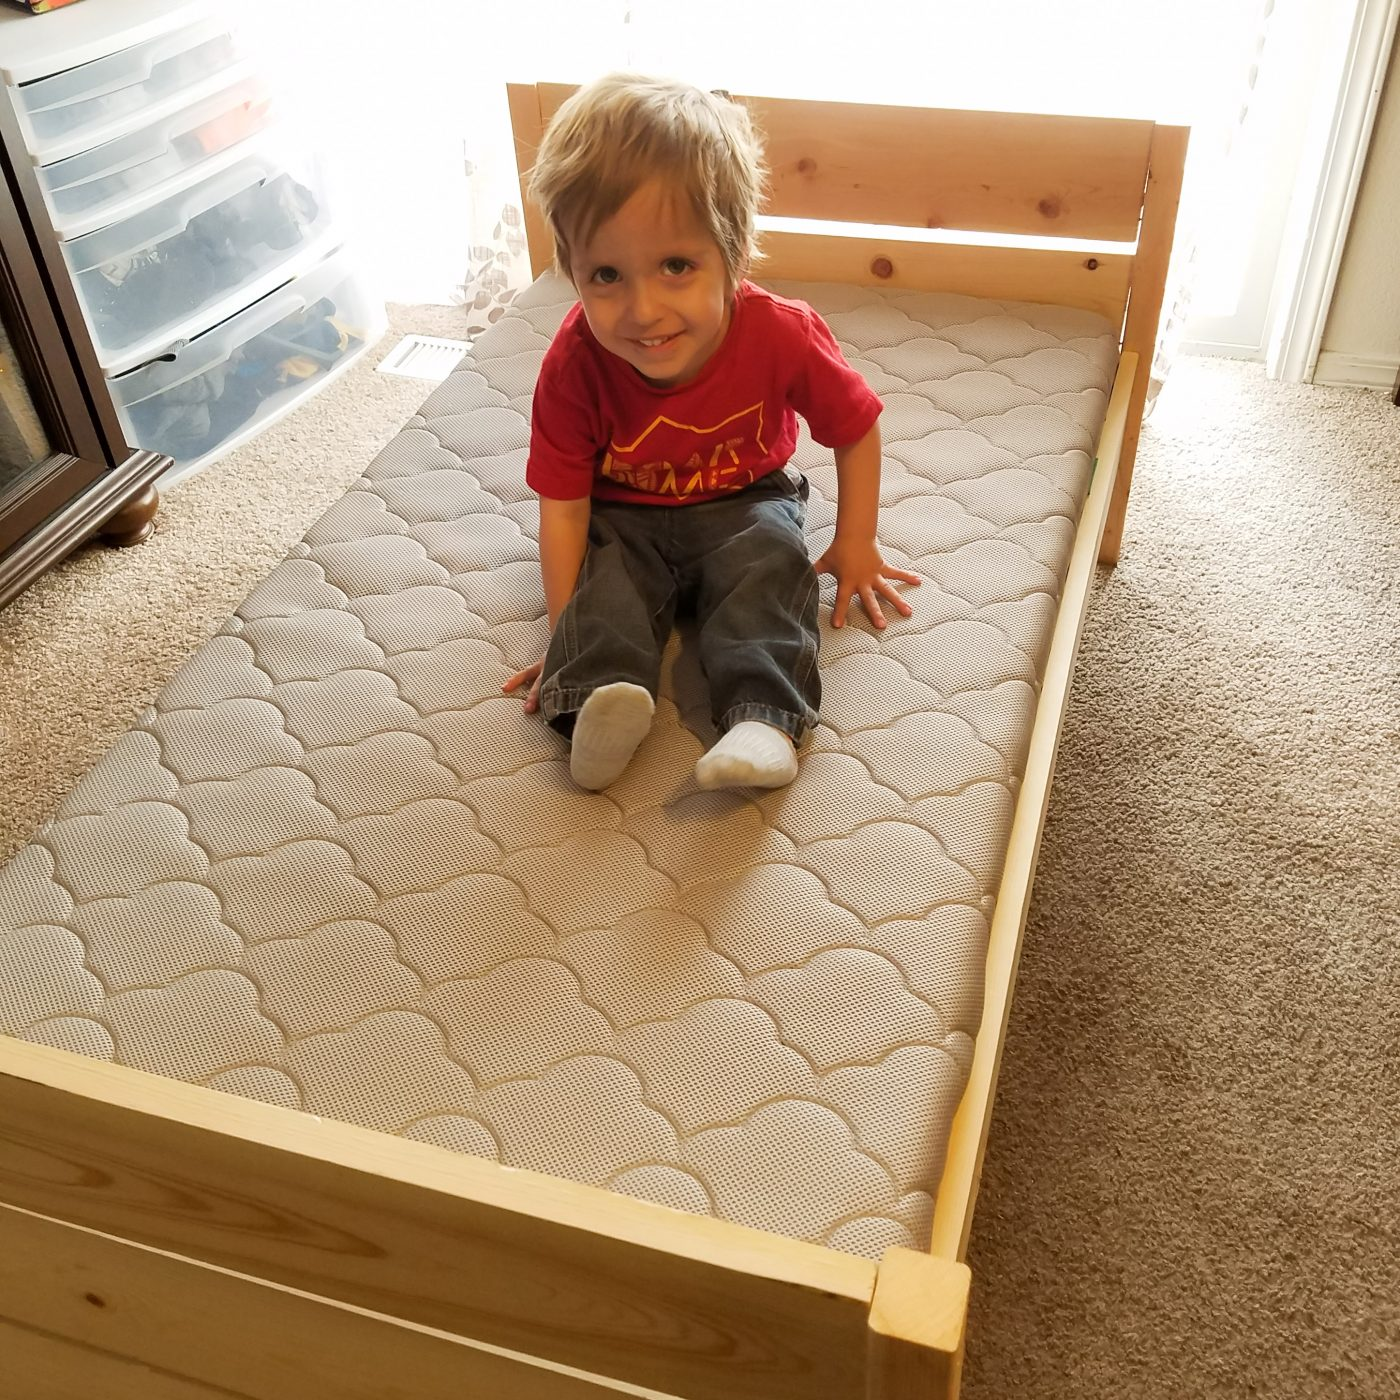 Colorful Night Diy Toddler Floor Bed Plans Montessori Floor Bed With Rails Toddler Floor Bed Diy Toddler Bed Kid Beds This Base Will Help Elevate Your Mattress From The Floor